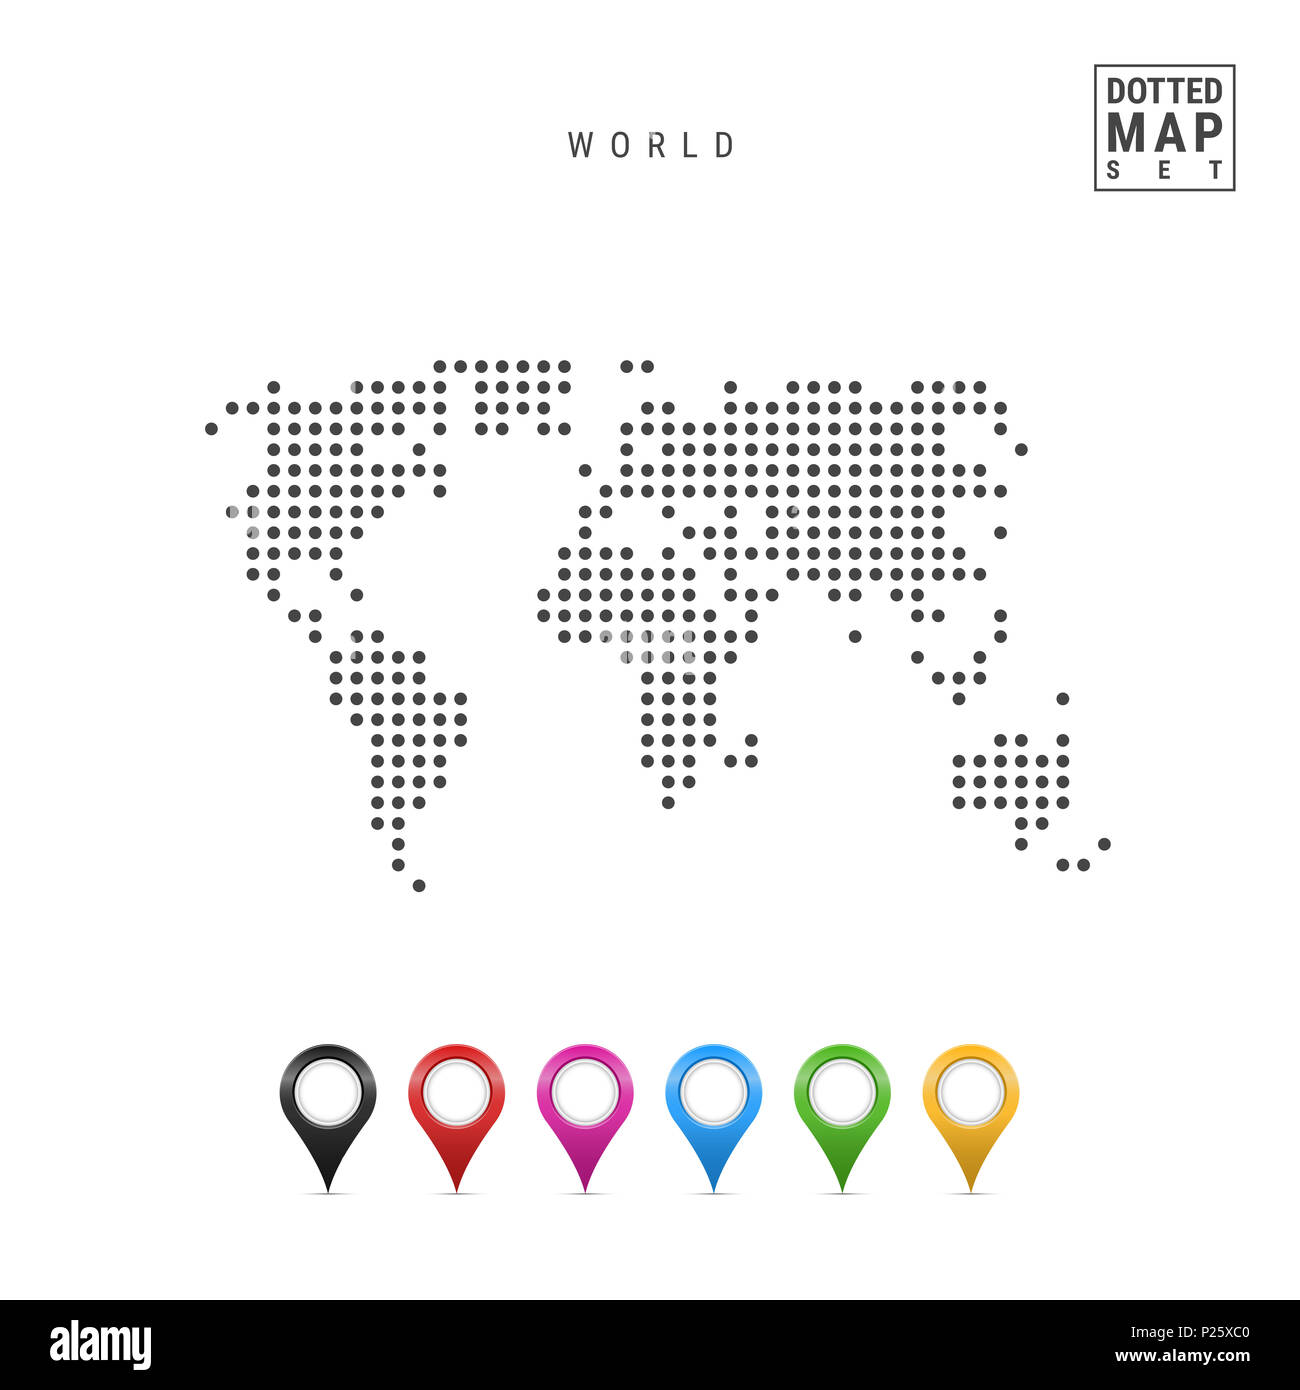 Simple world map outline cut out stock images pictures alamy dotted map of the world simple silhouette of the world set of multicolored map gumiabroncs Image collections